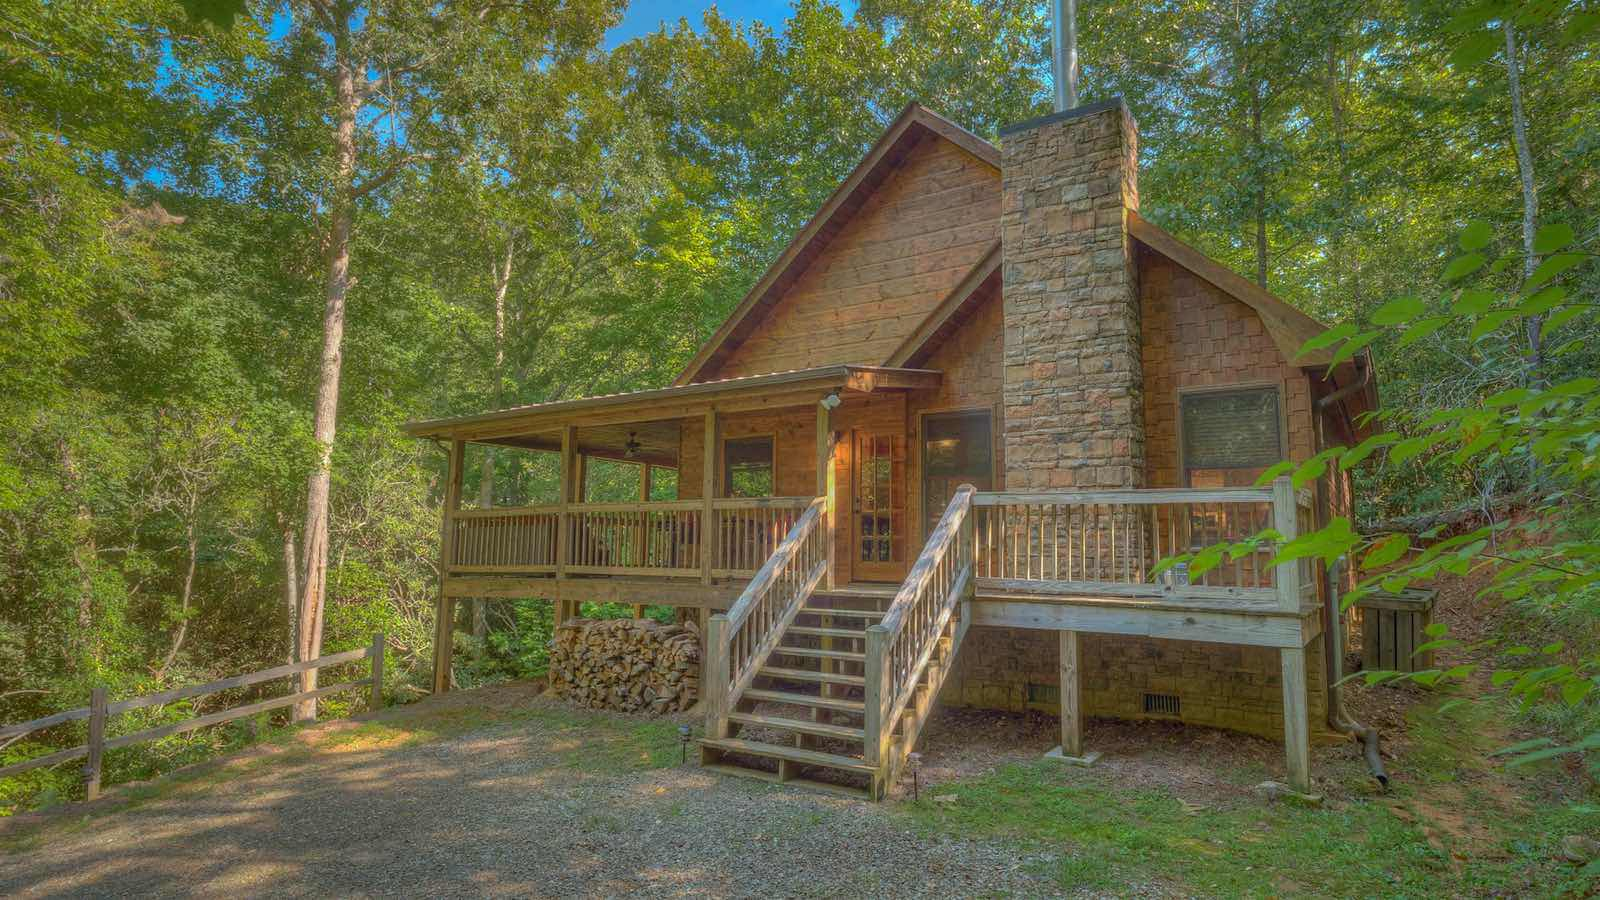 x blue nevaeh cabin cabins luxury for georgia mountain vacations texnoklimat com ga ridge rentals in rent log